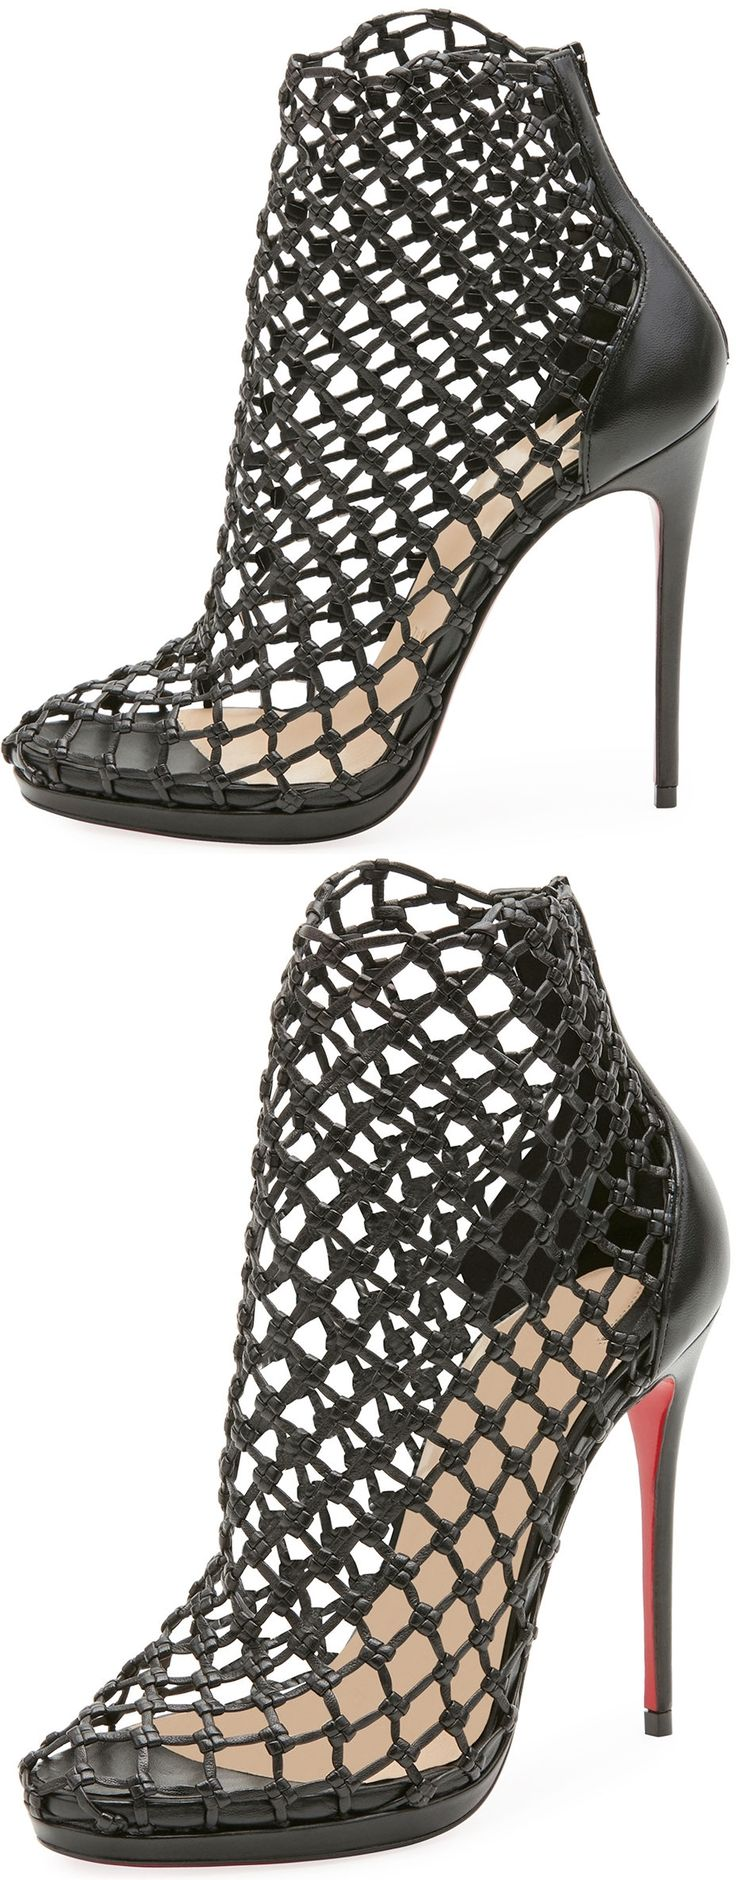 Dope or Nope? Don't miss this Christian Louboutin Porligat cage bootie in napa leather